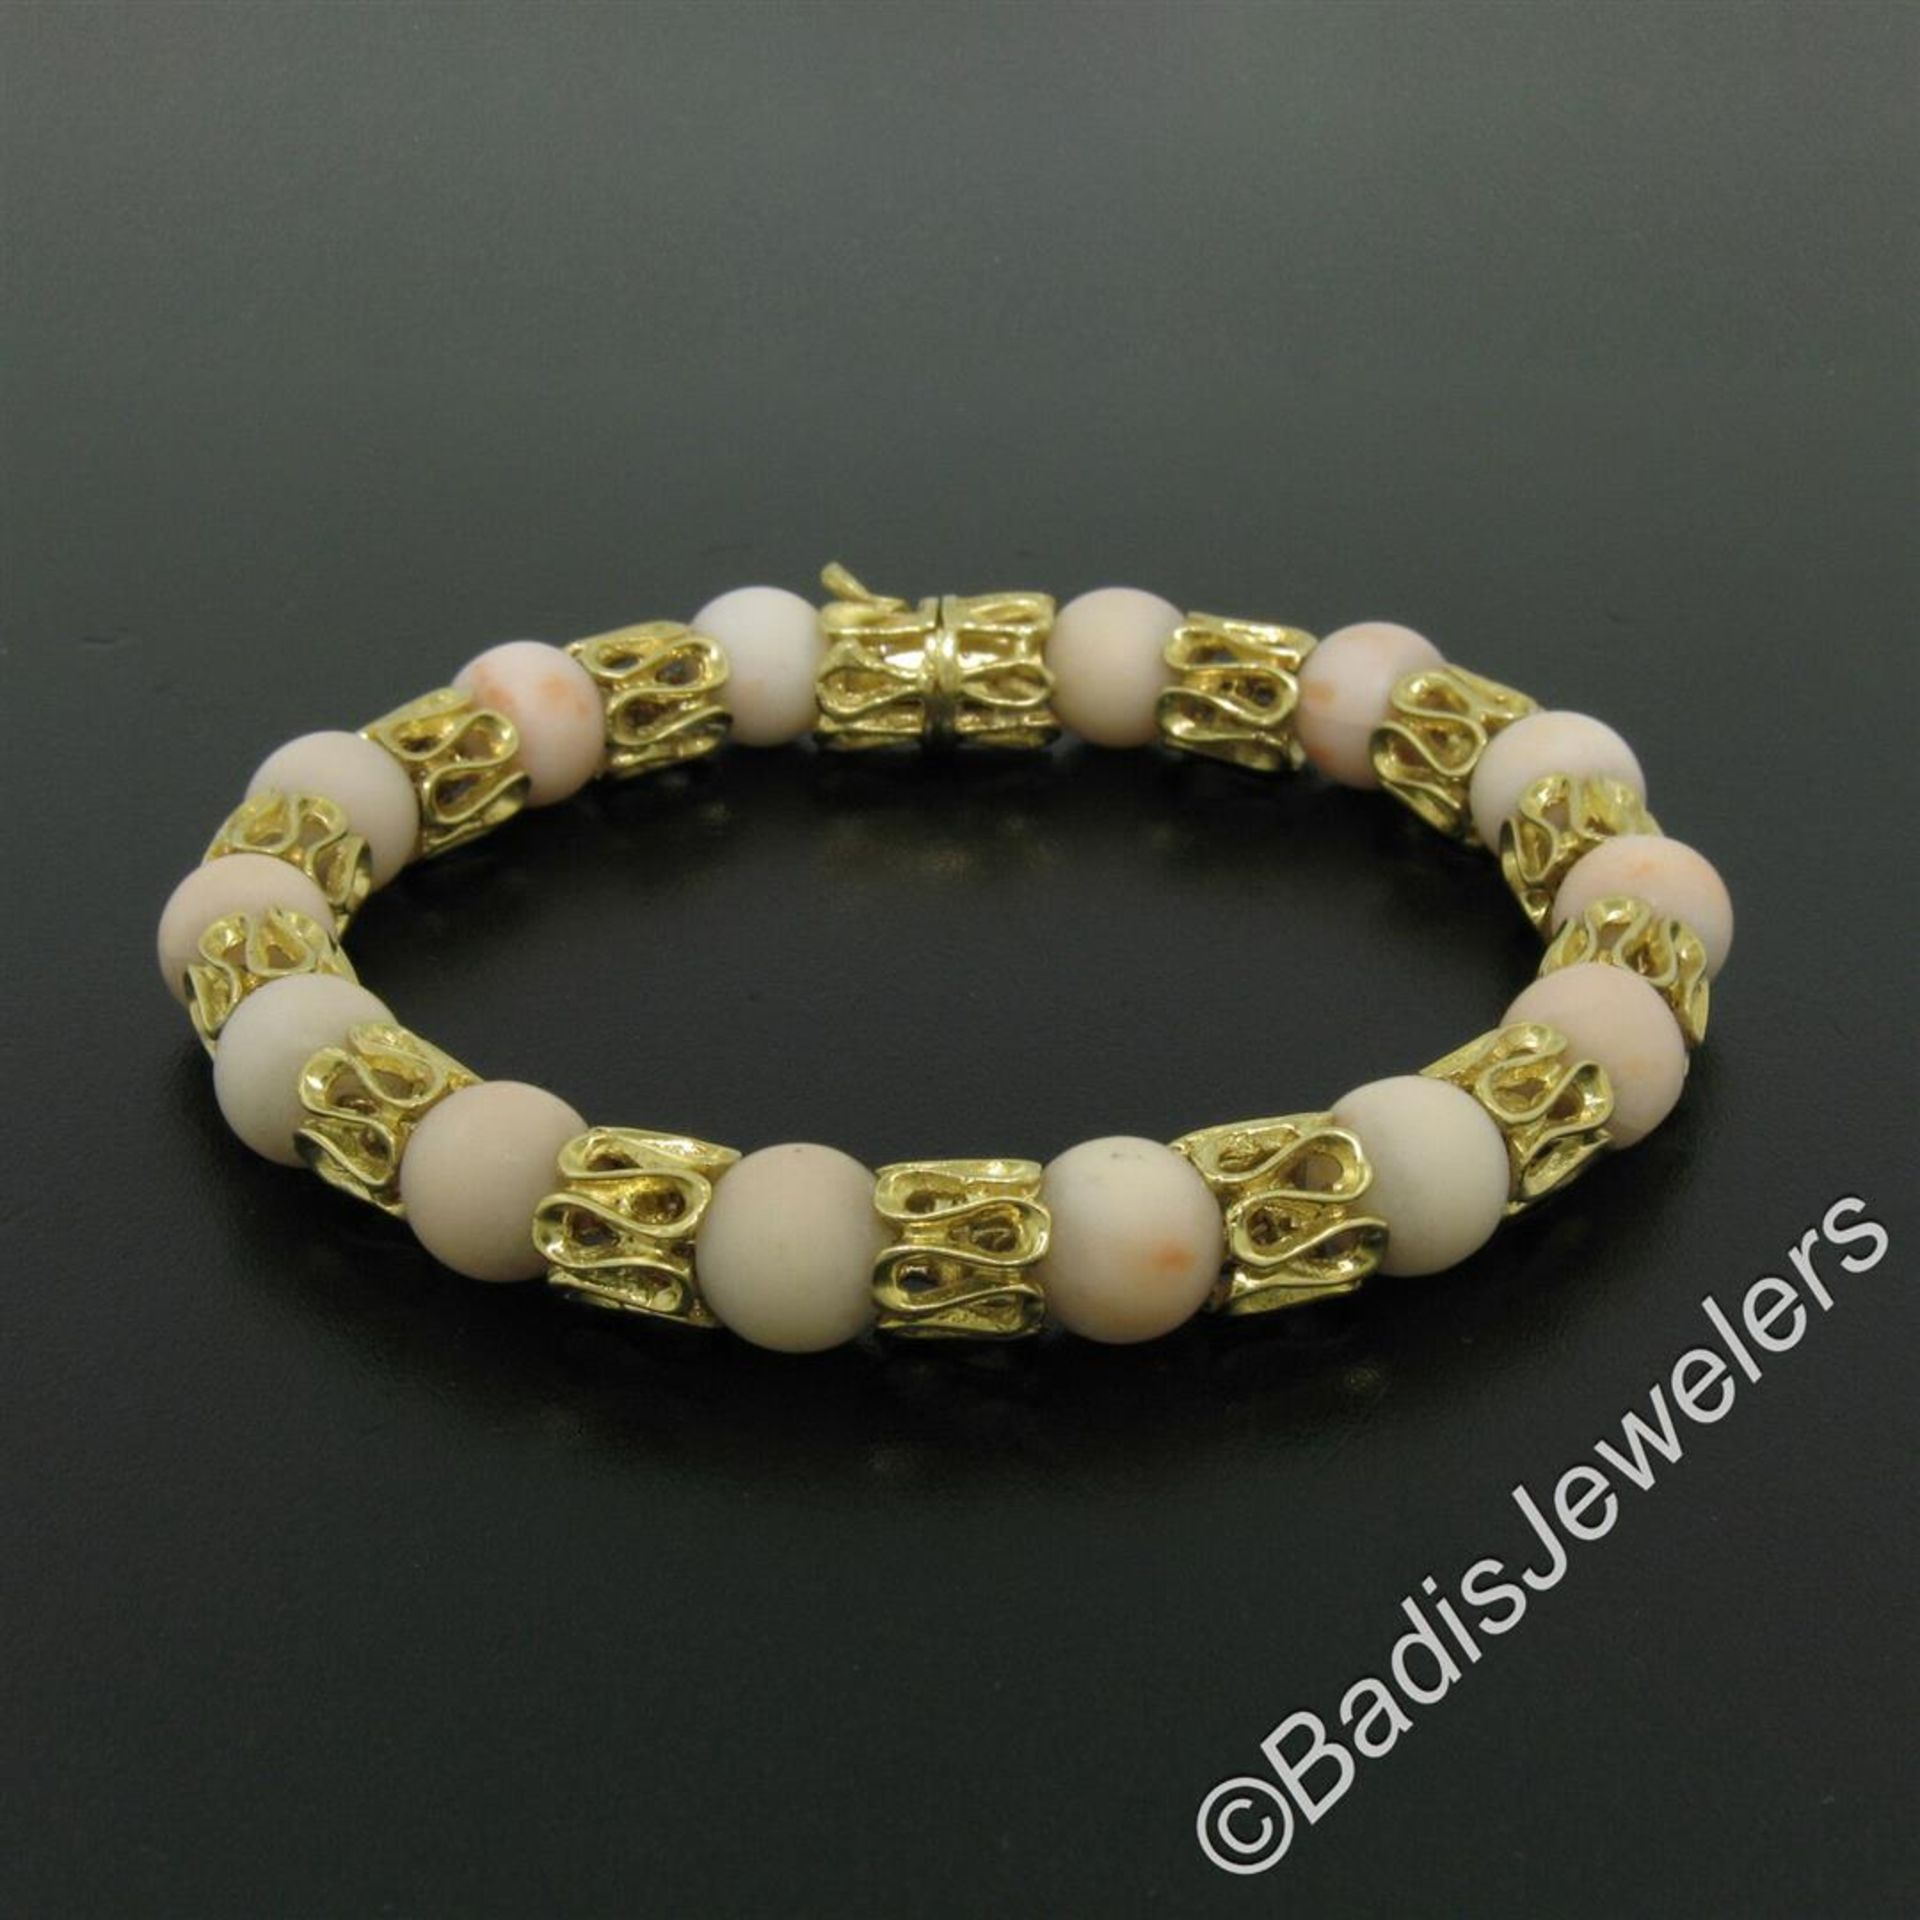 Vintage 18kt Yellow Gold Twisted Link Bracelet w/ Matching Angel Skin Coral Bead - Image 2 of 6